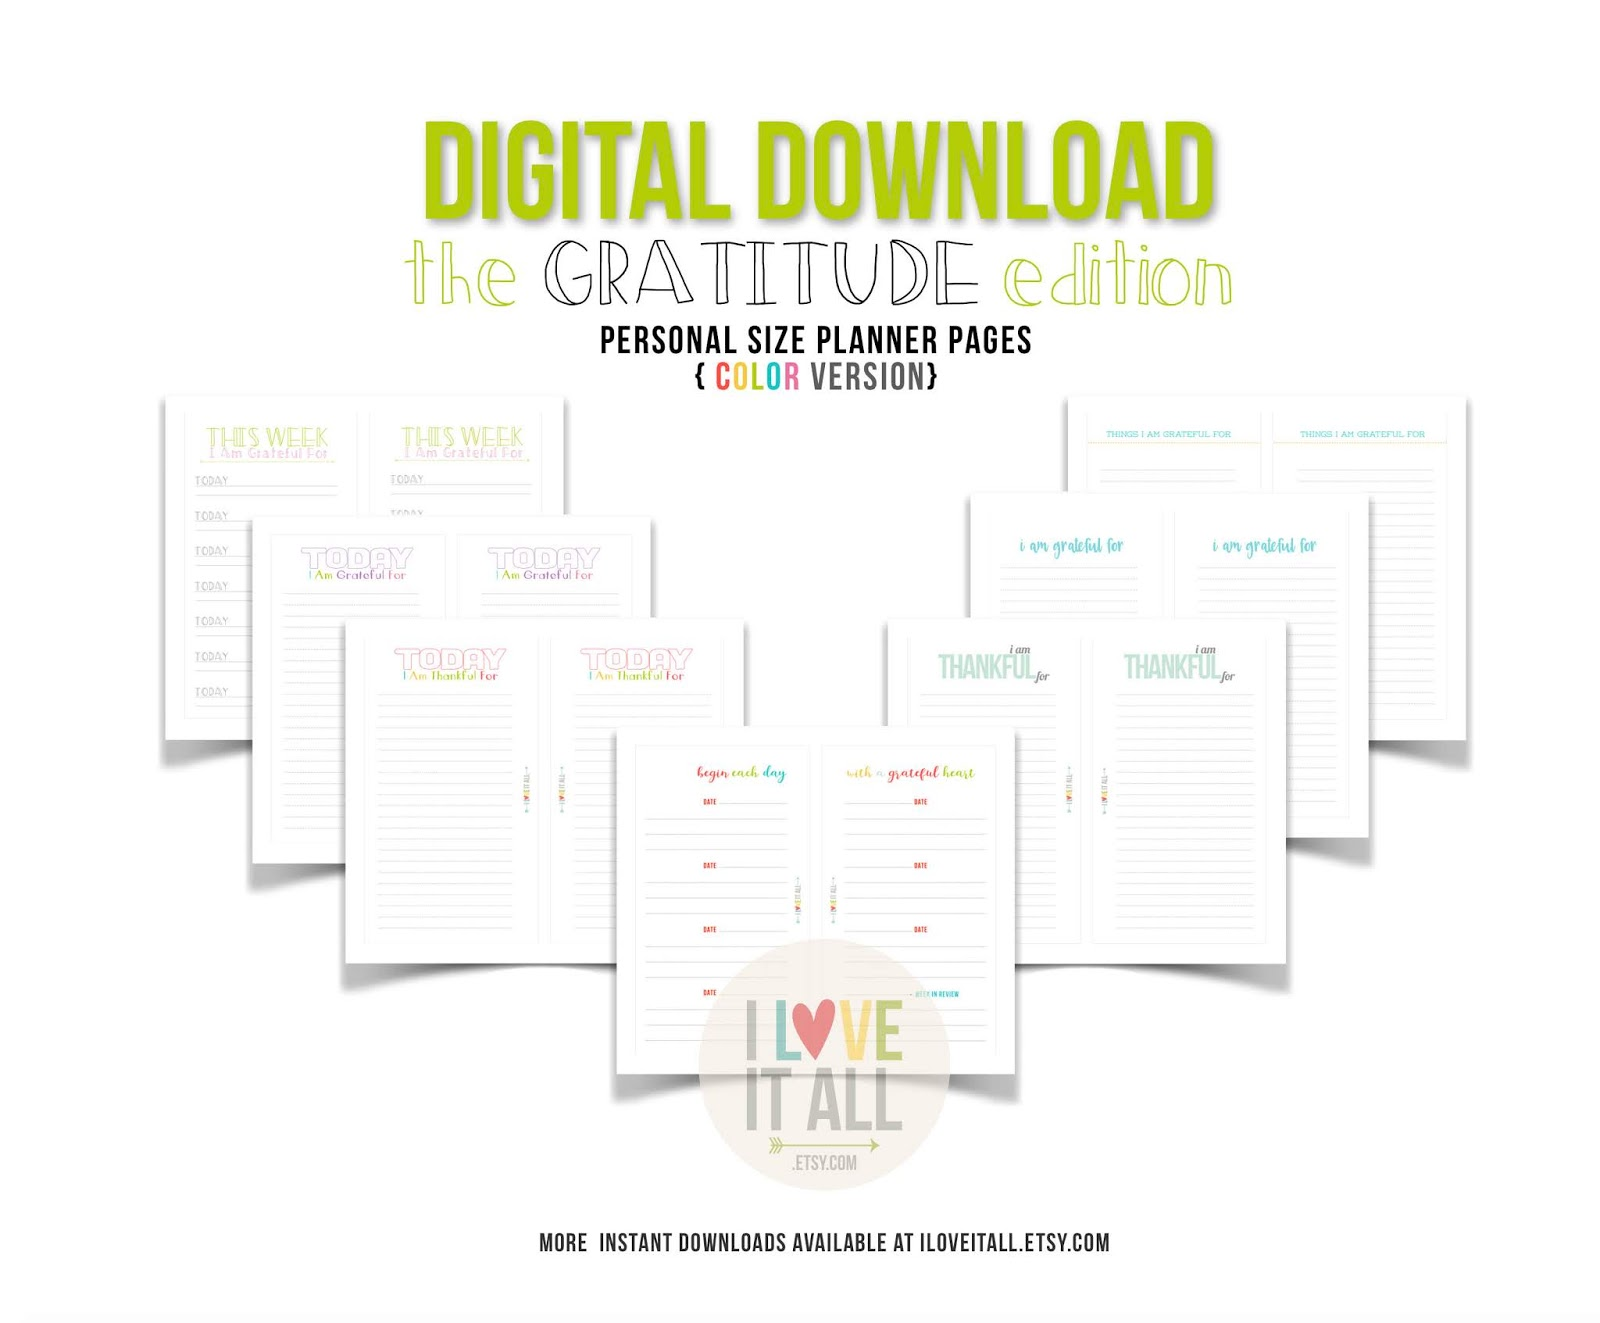 #Gratitude Journal #Gratitude #Grateful #Thankfulness #Digital Download #Filofax #Planner Pages #365 Things #Today